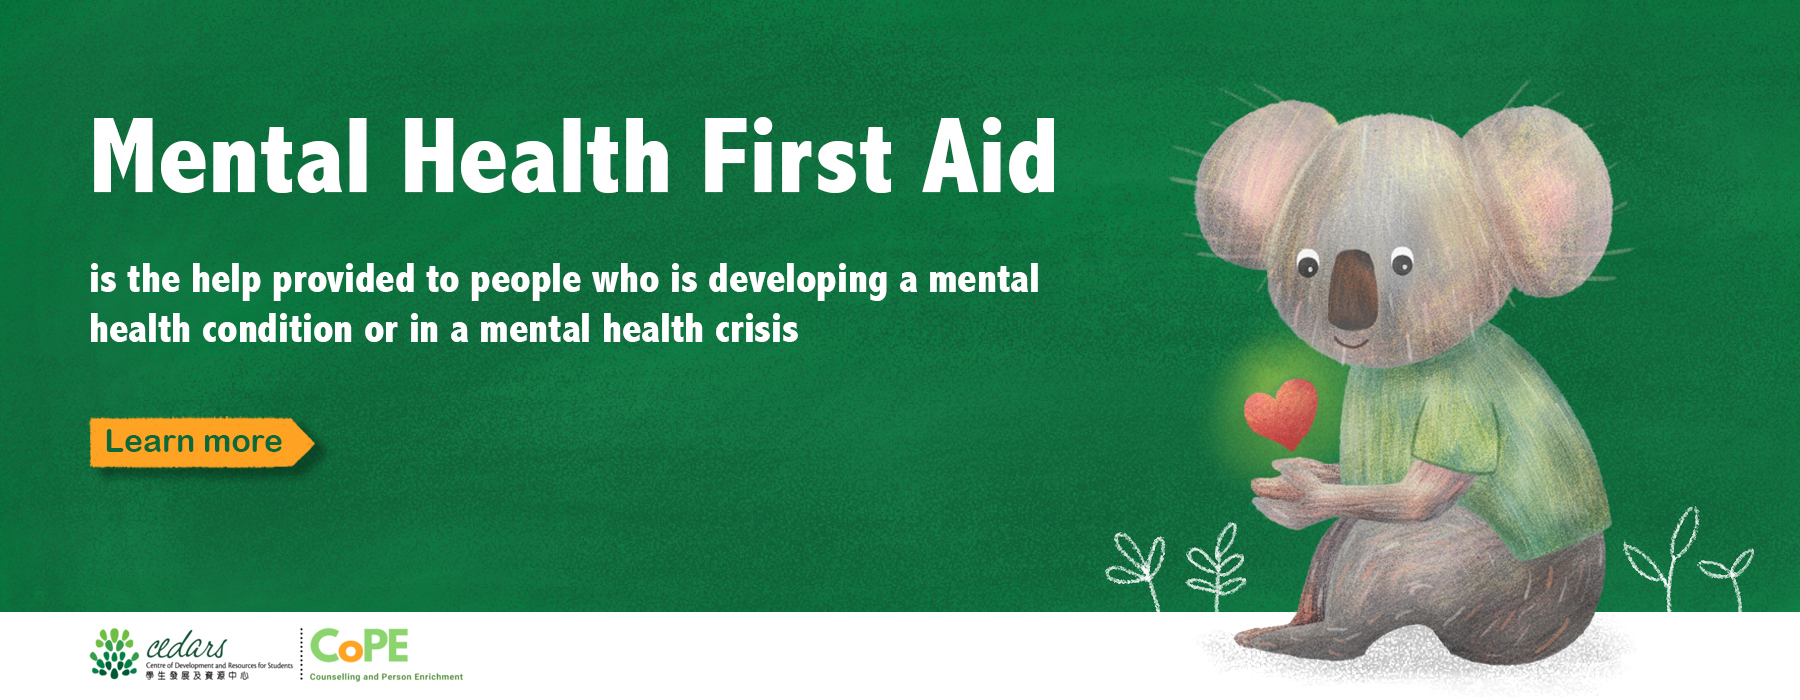 Mental Health First Aid Training at HKU